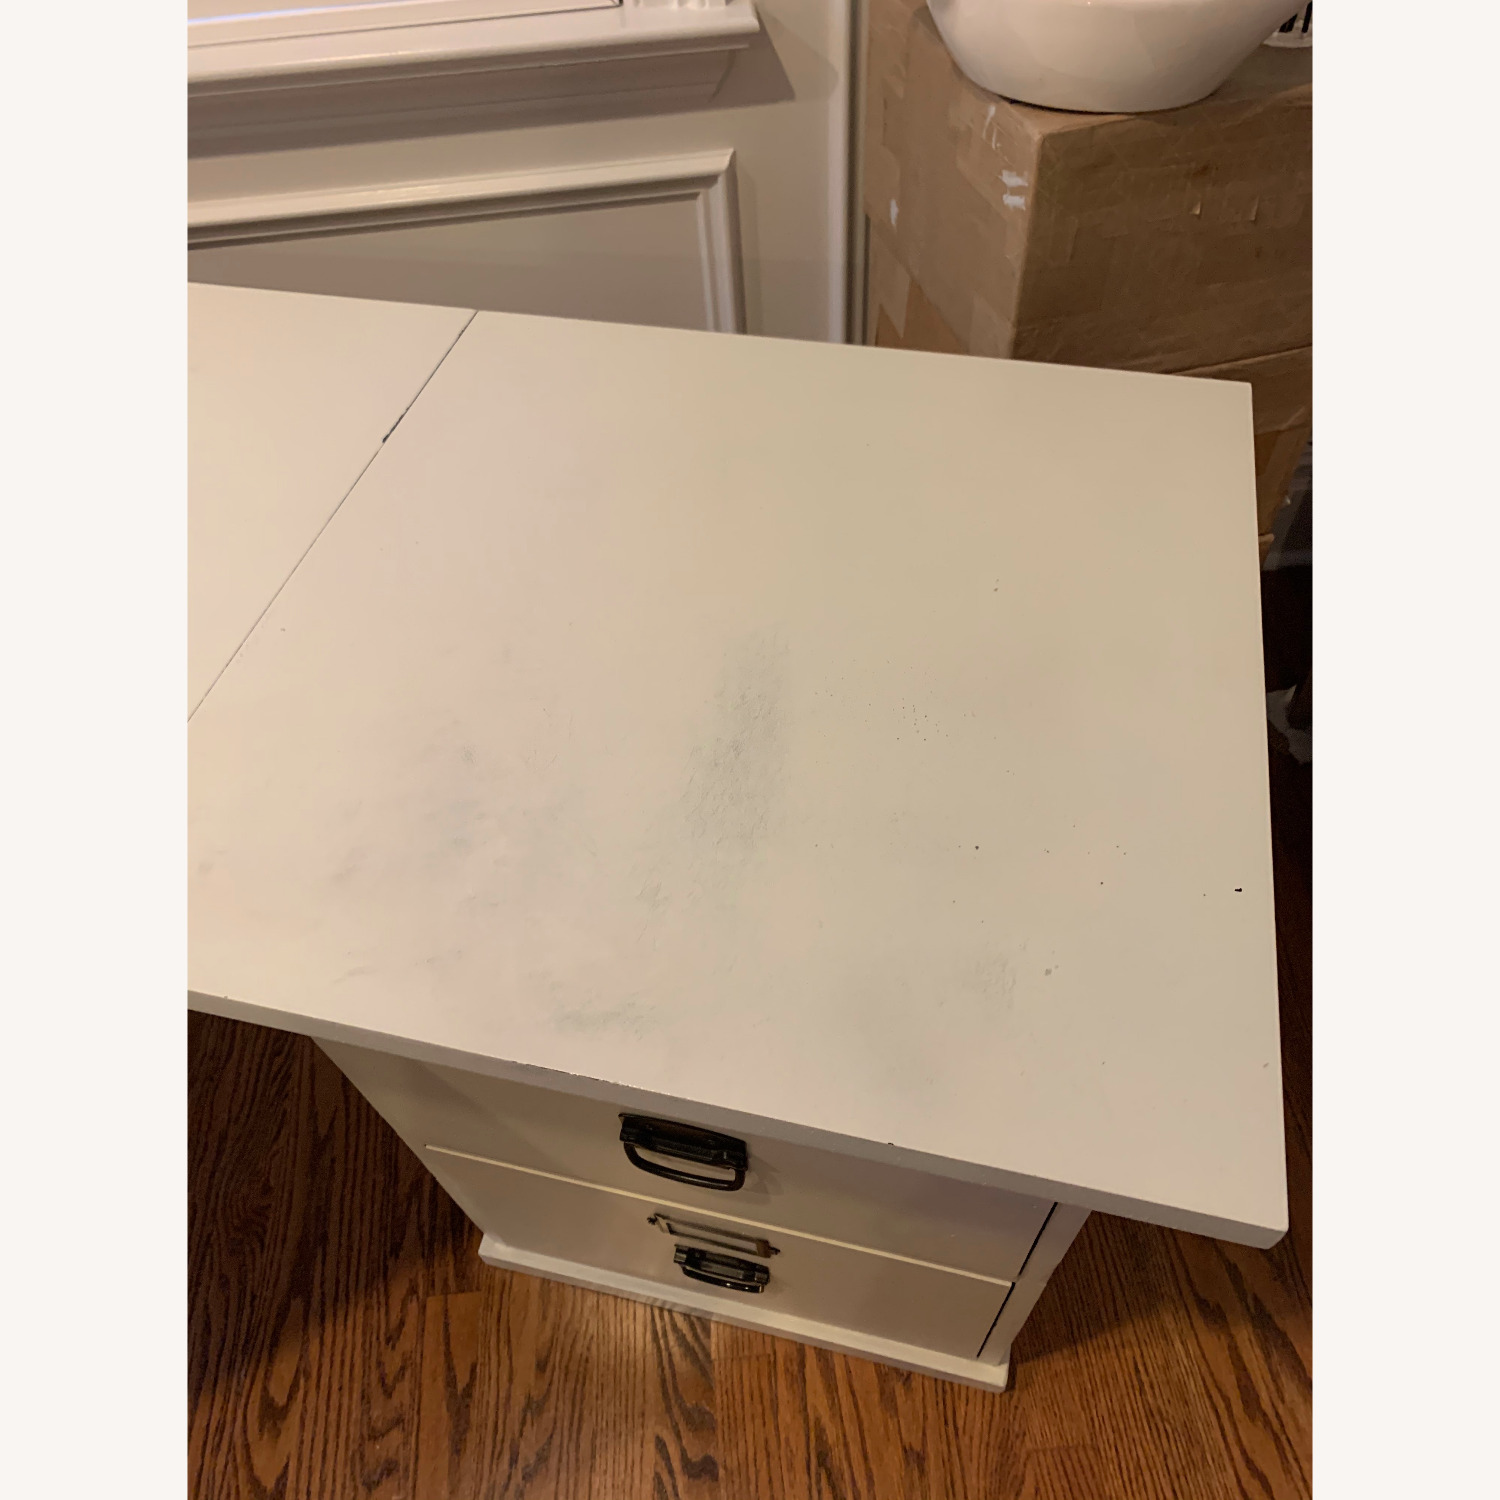 Pottery Barn Home Office Desk with 2 Drawer Cabinets - image-5